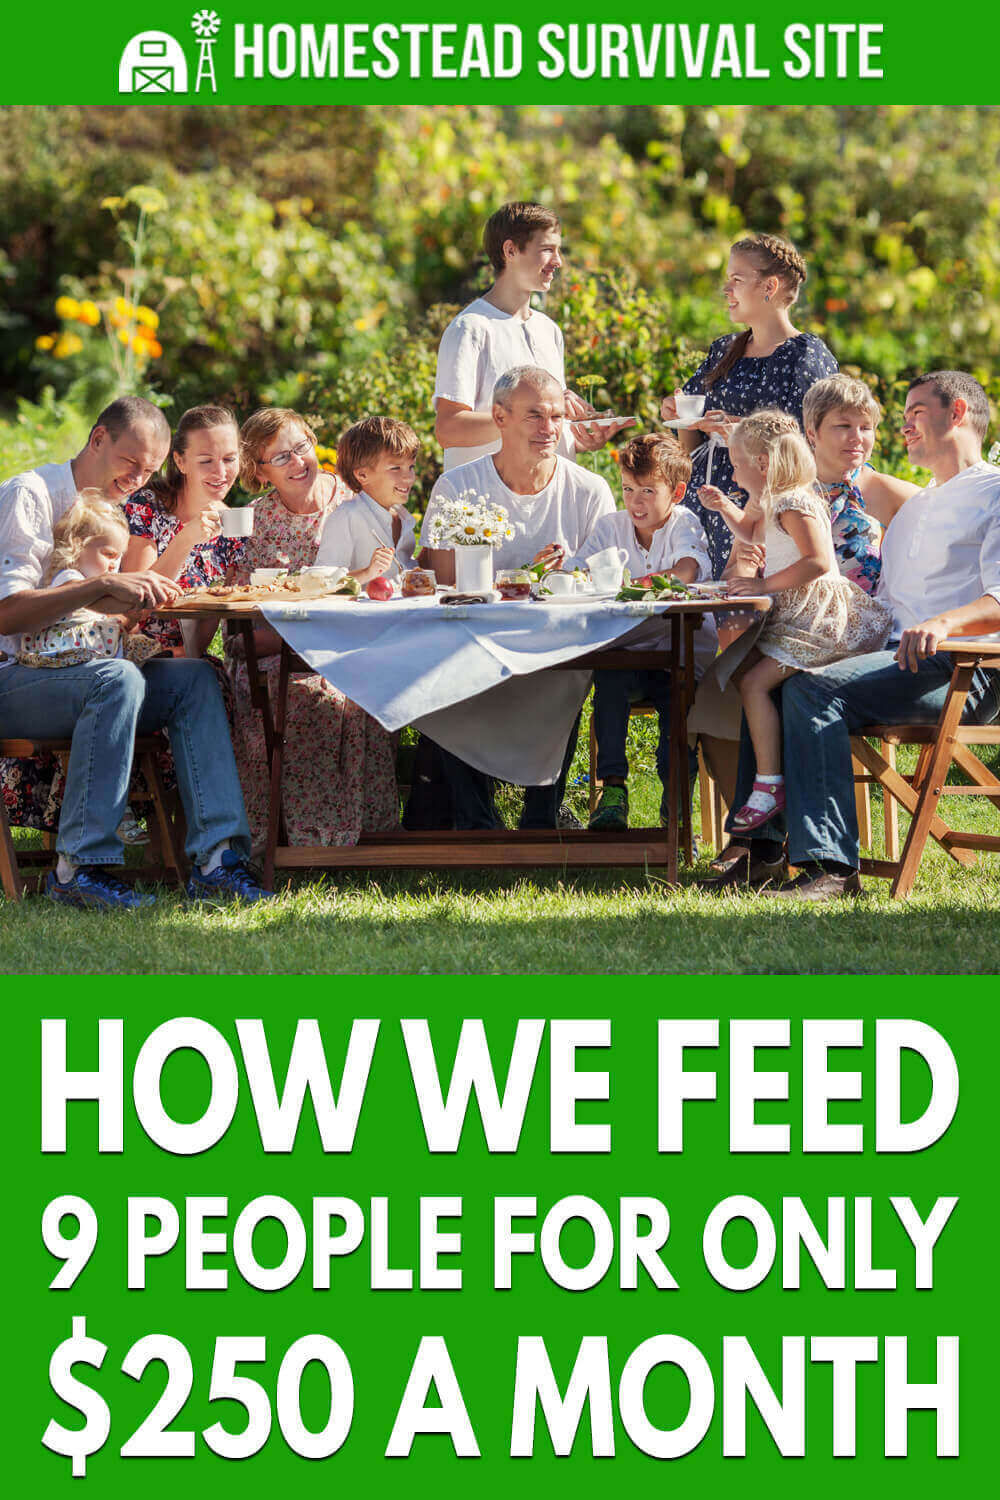 How We Feed 9 People For Only $250 a Month